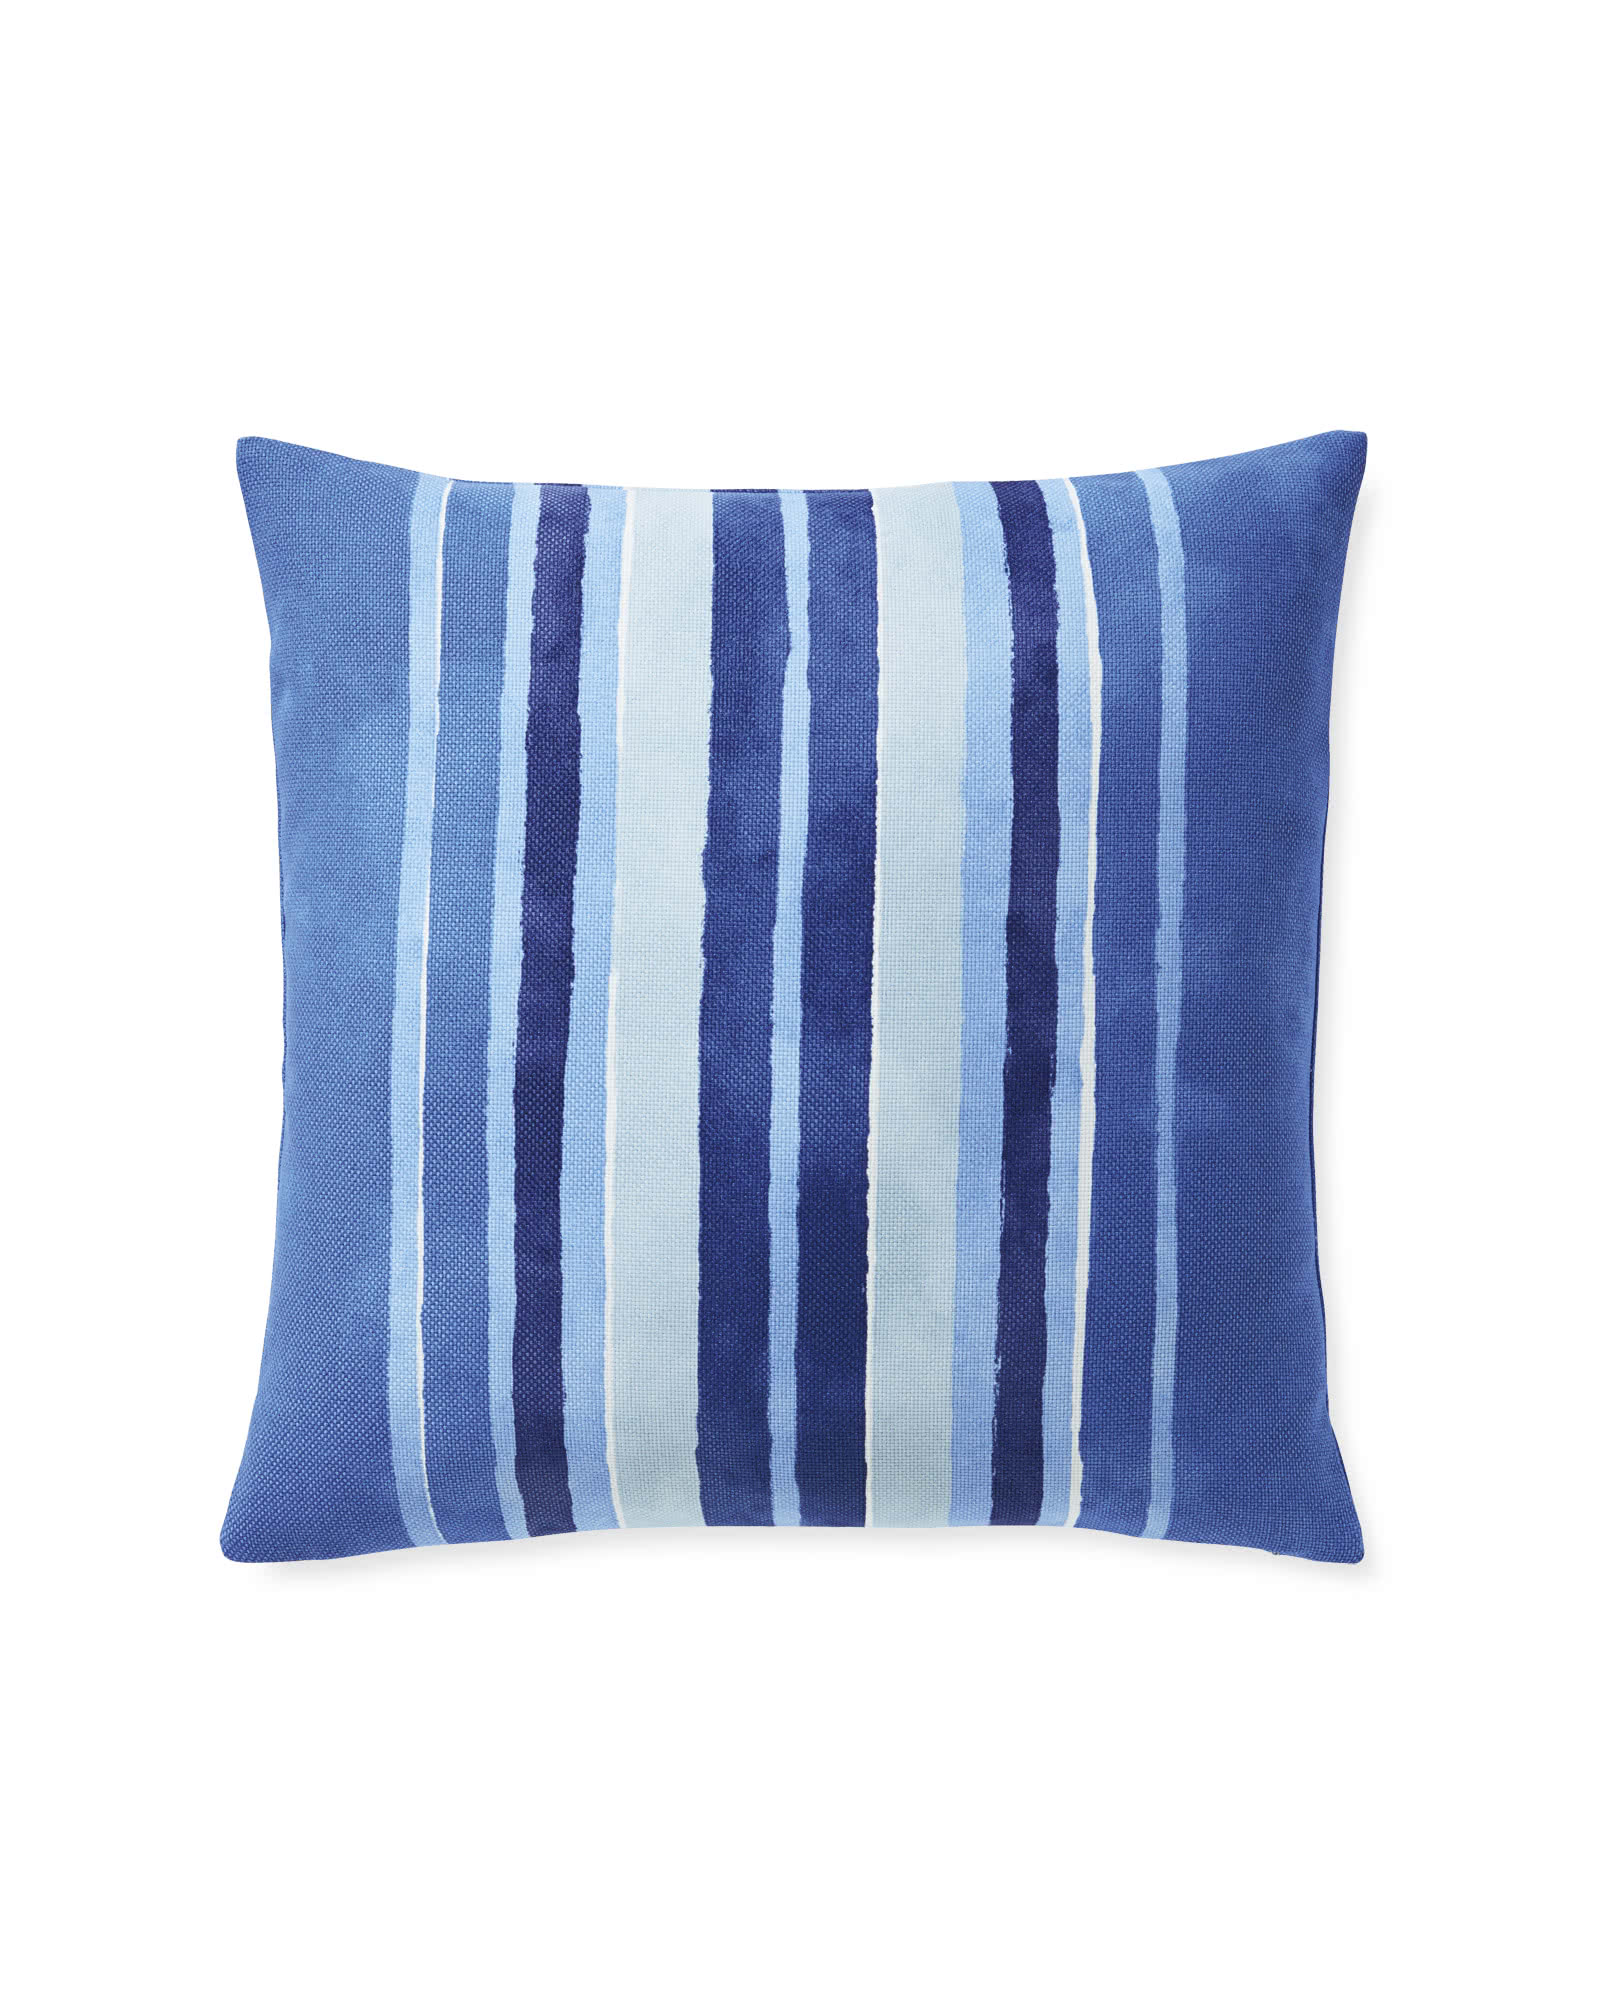 Sonoma Stripe Outdoor Pillow Cover,